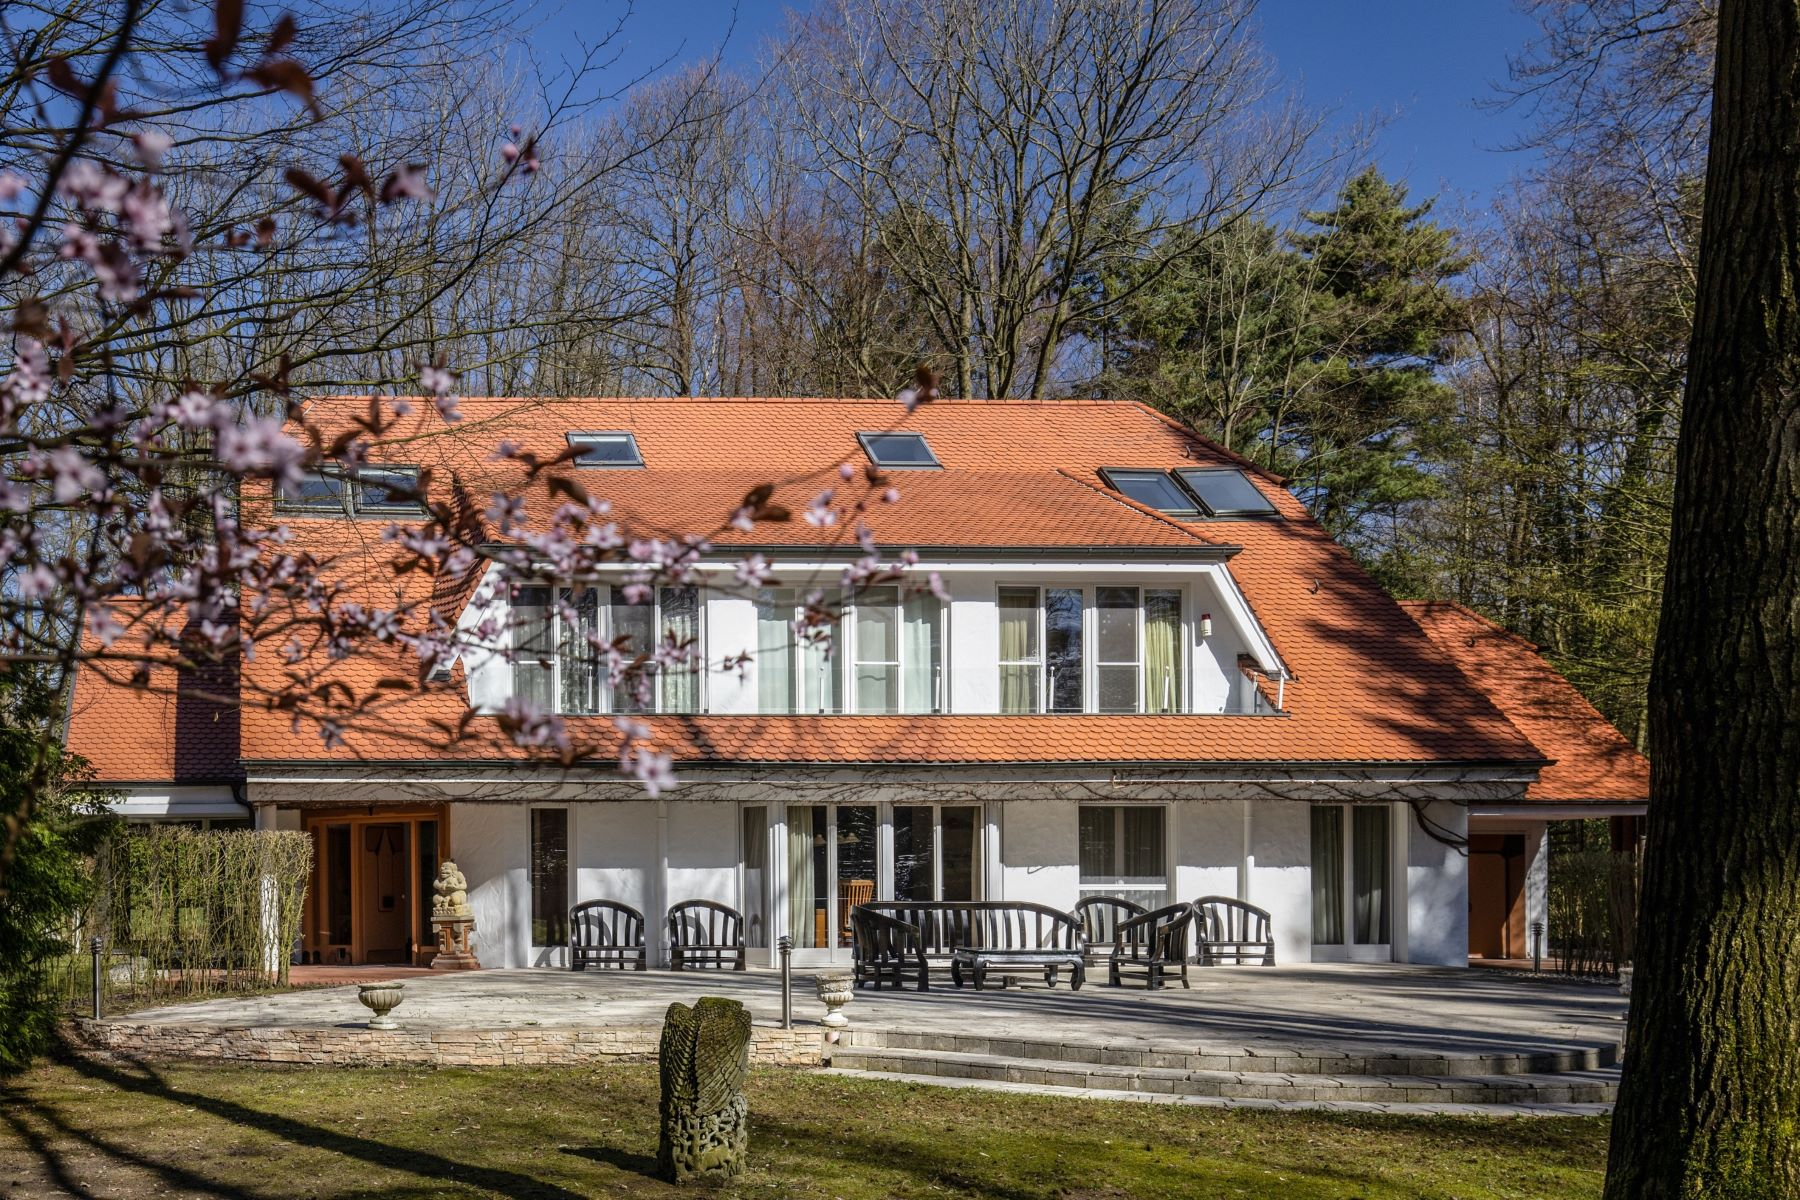 Single Family Homes for Sale at Villa In The Park Other North Rhine Westphalia, North Rhine Westphalia 41169 Germany